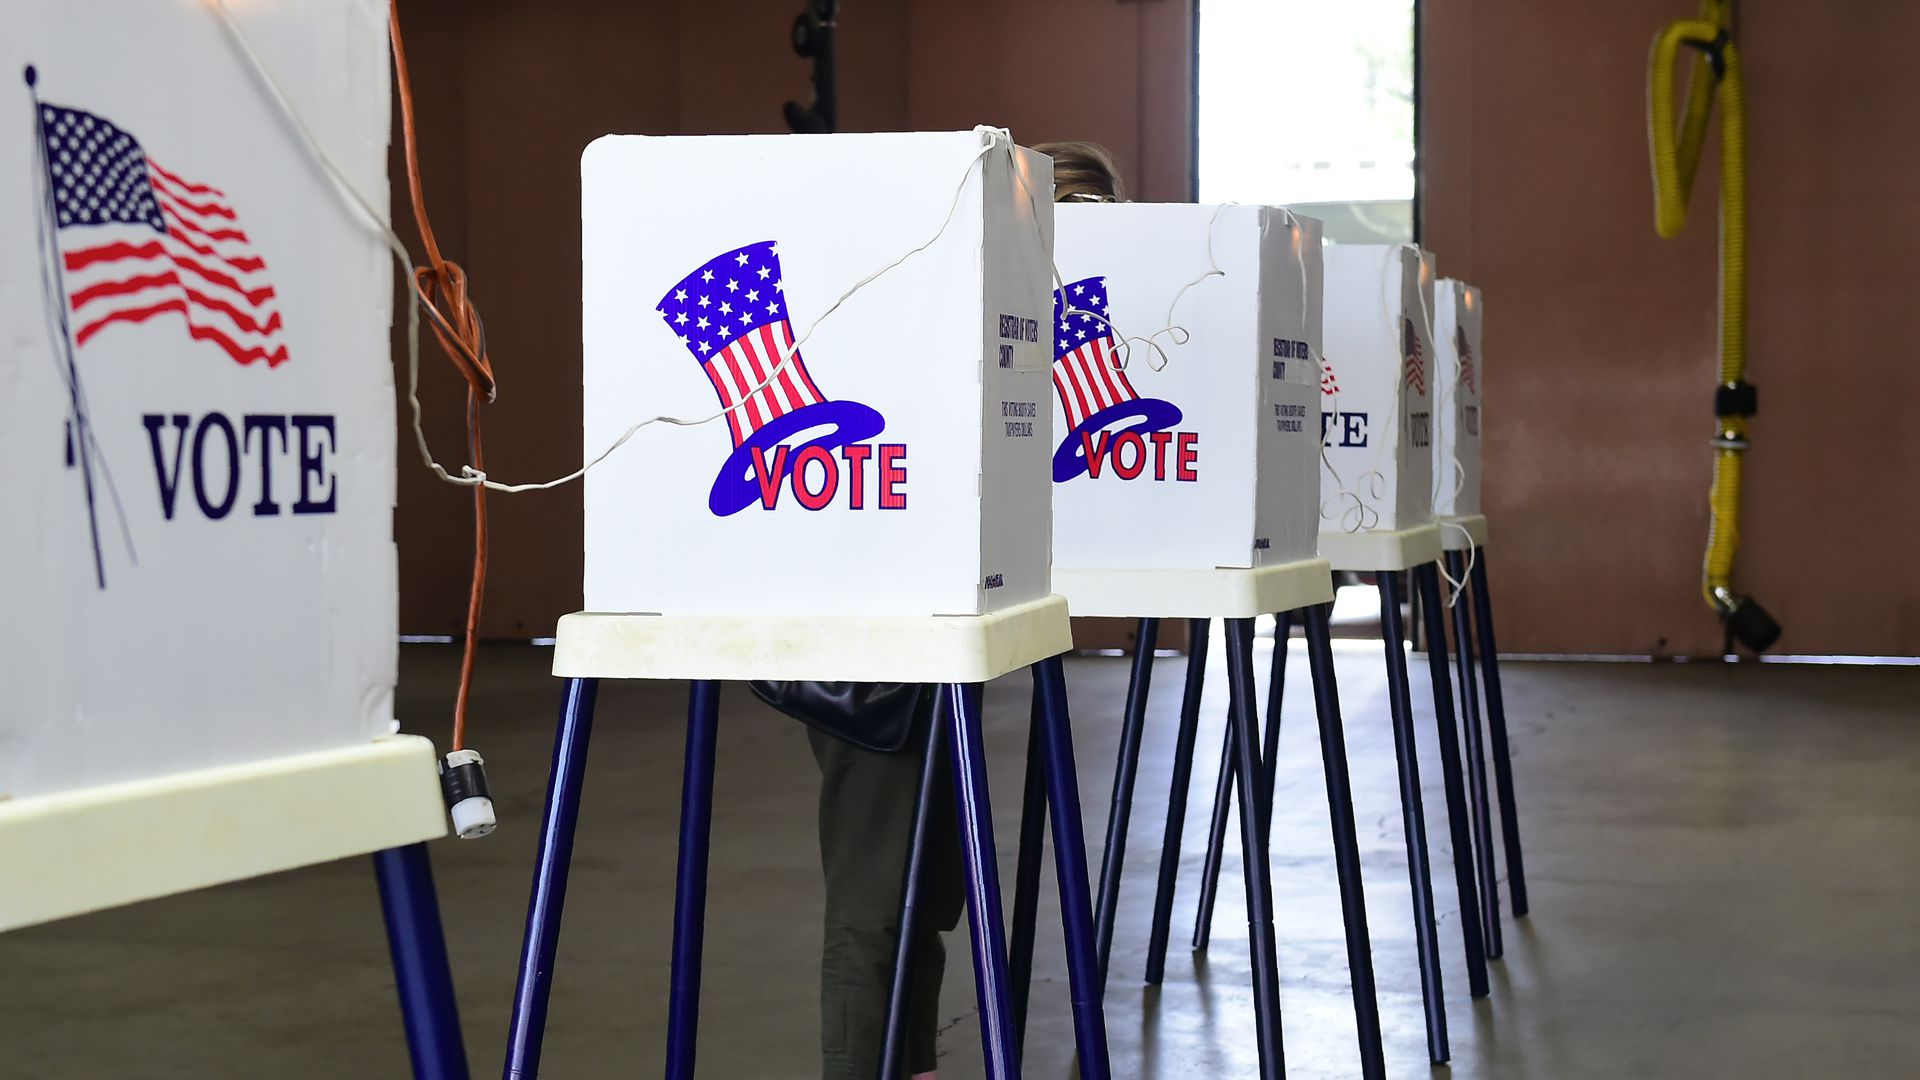 A person in a voting booth